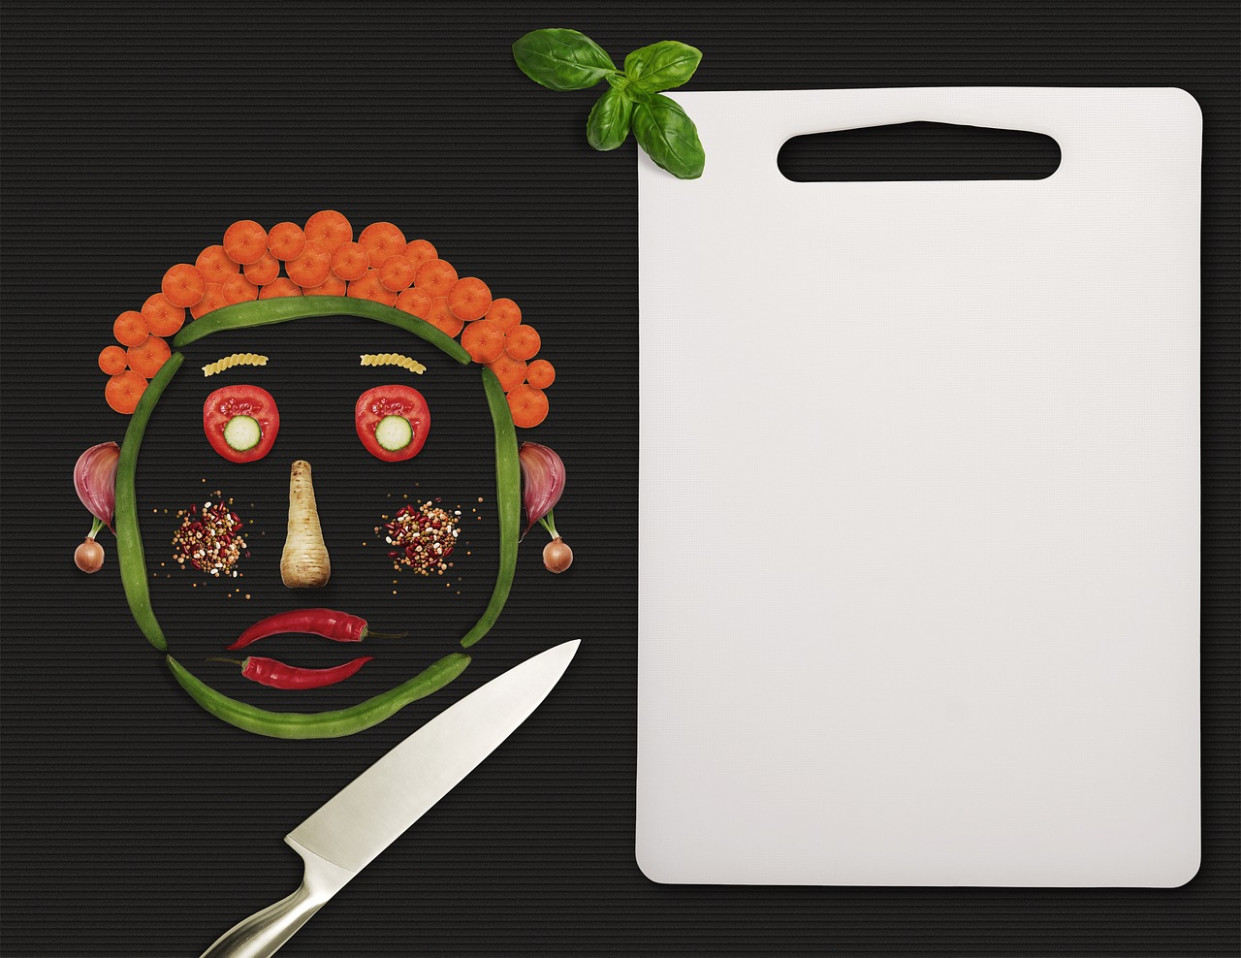 Menu, Vegetables, Knife, Board, Face